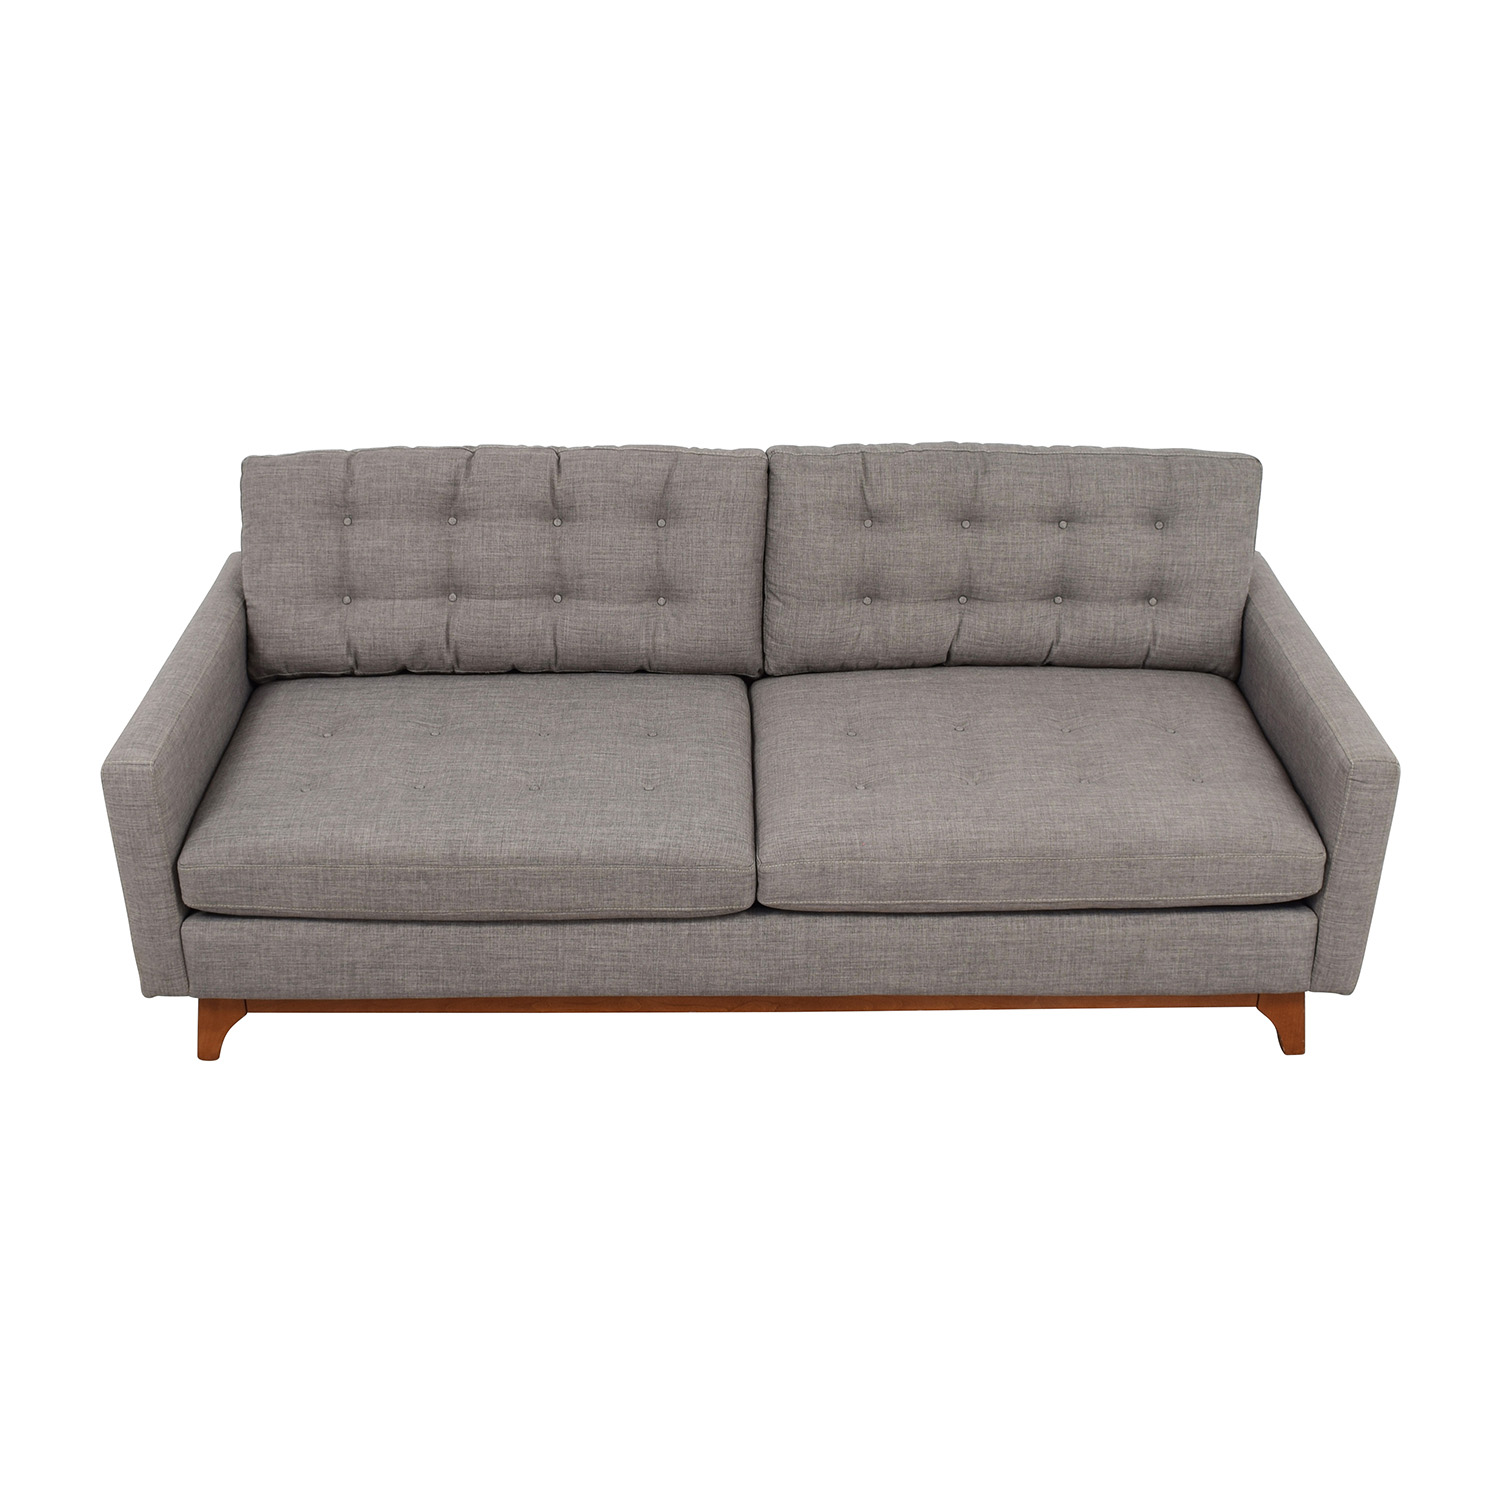 Classic sofas used classic sofas for sale for Classic sofas for sale